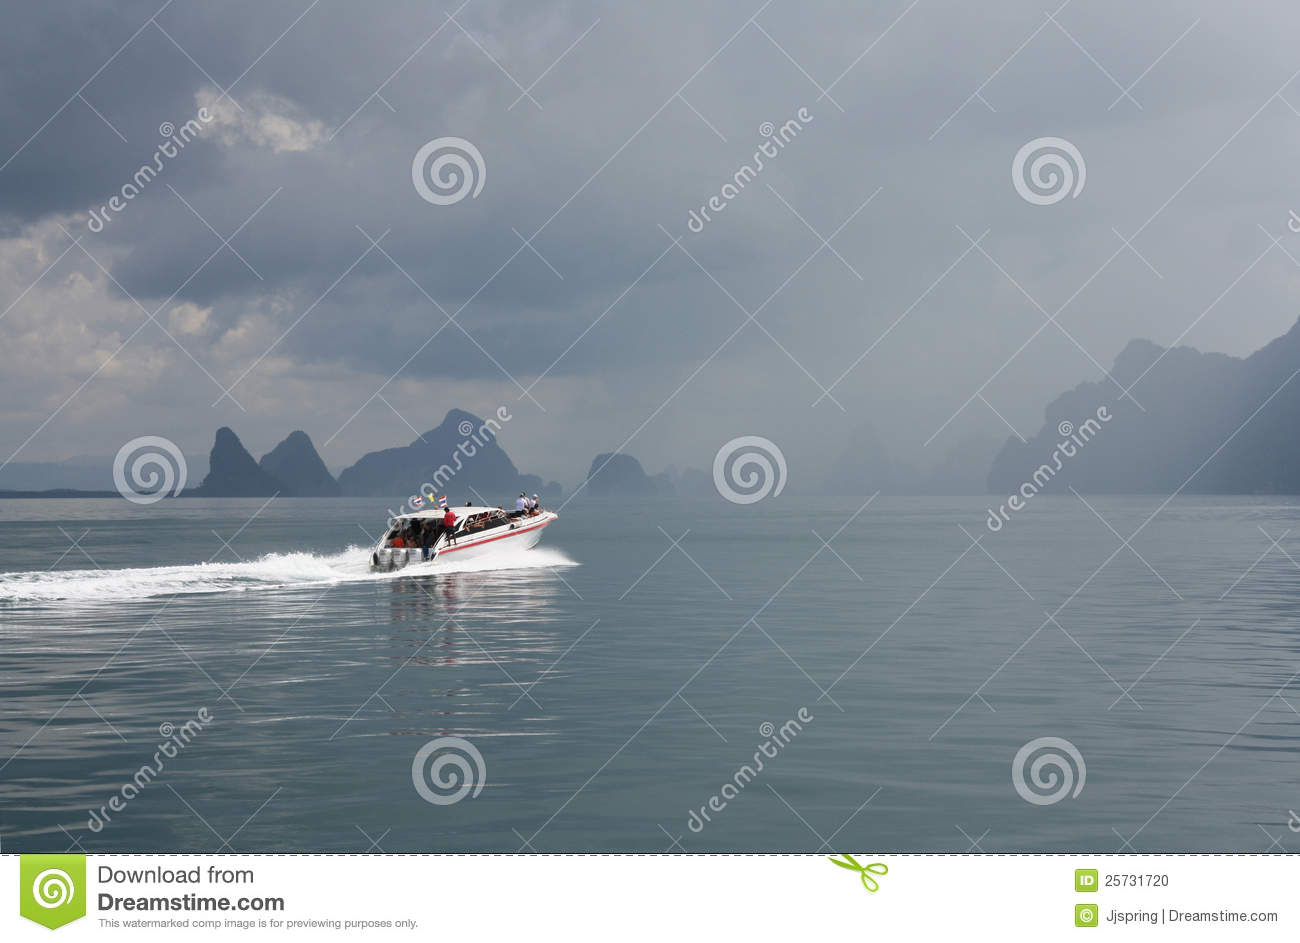 Boat in Sea in stormy weather